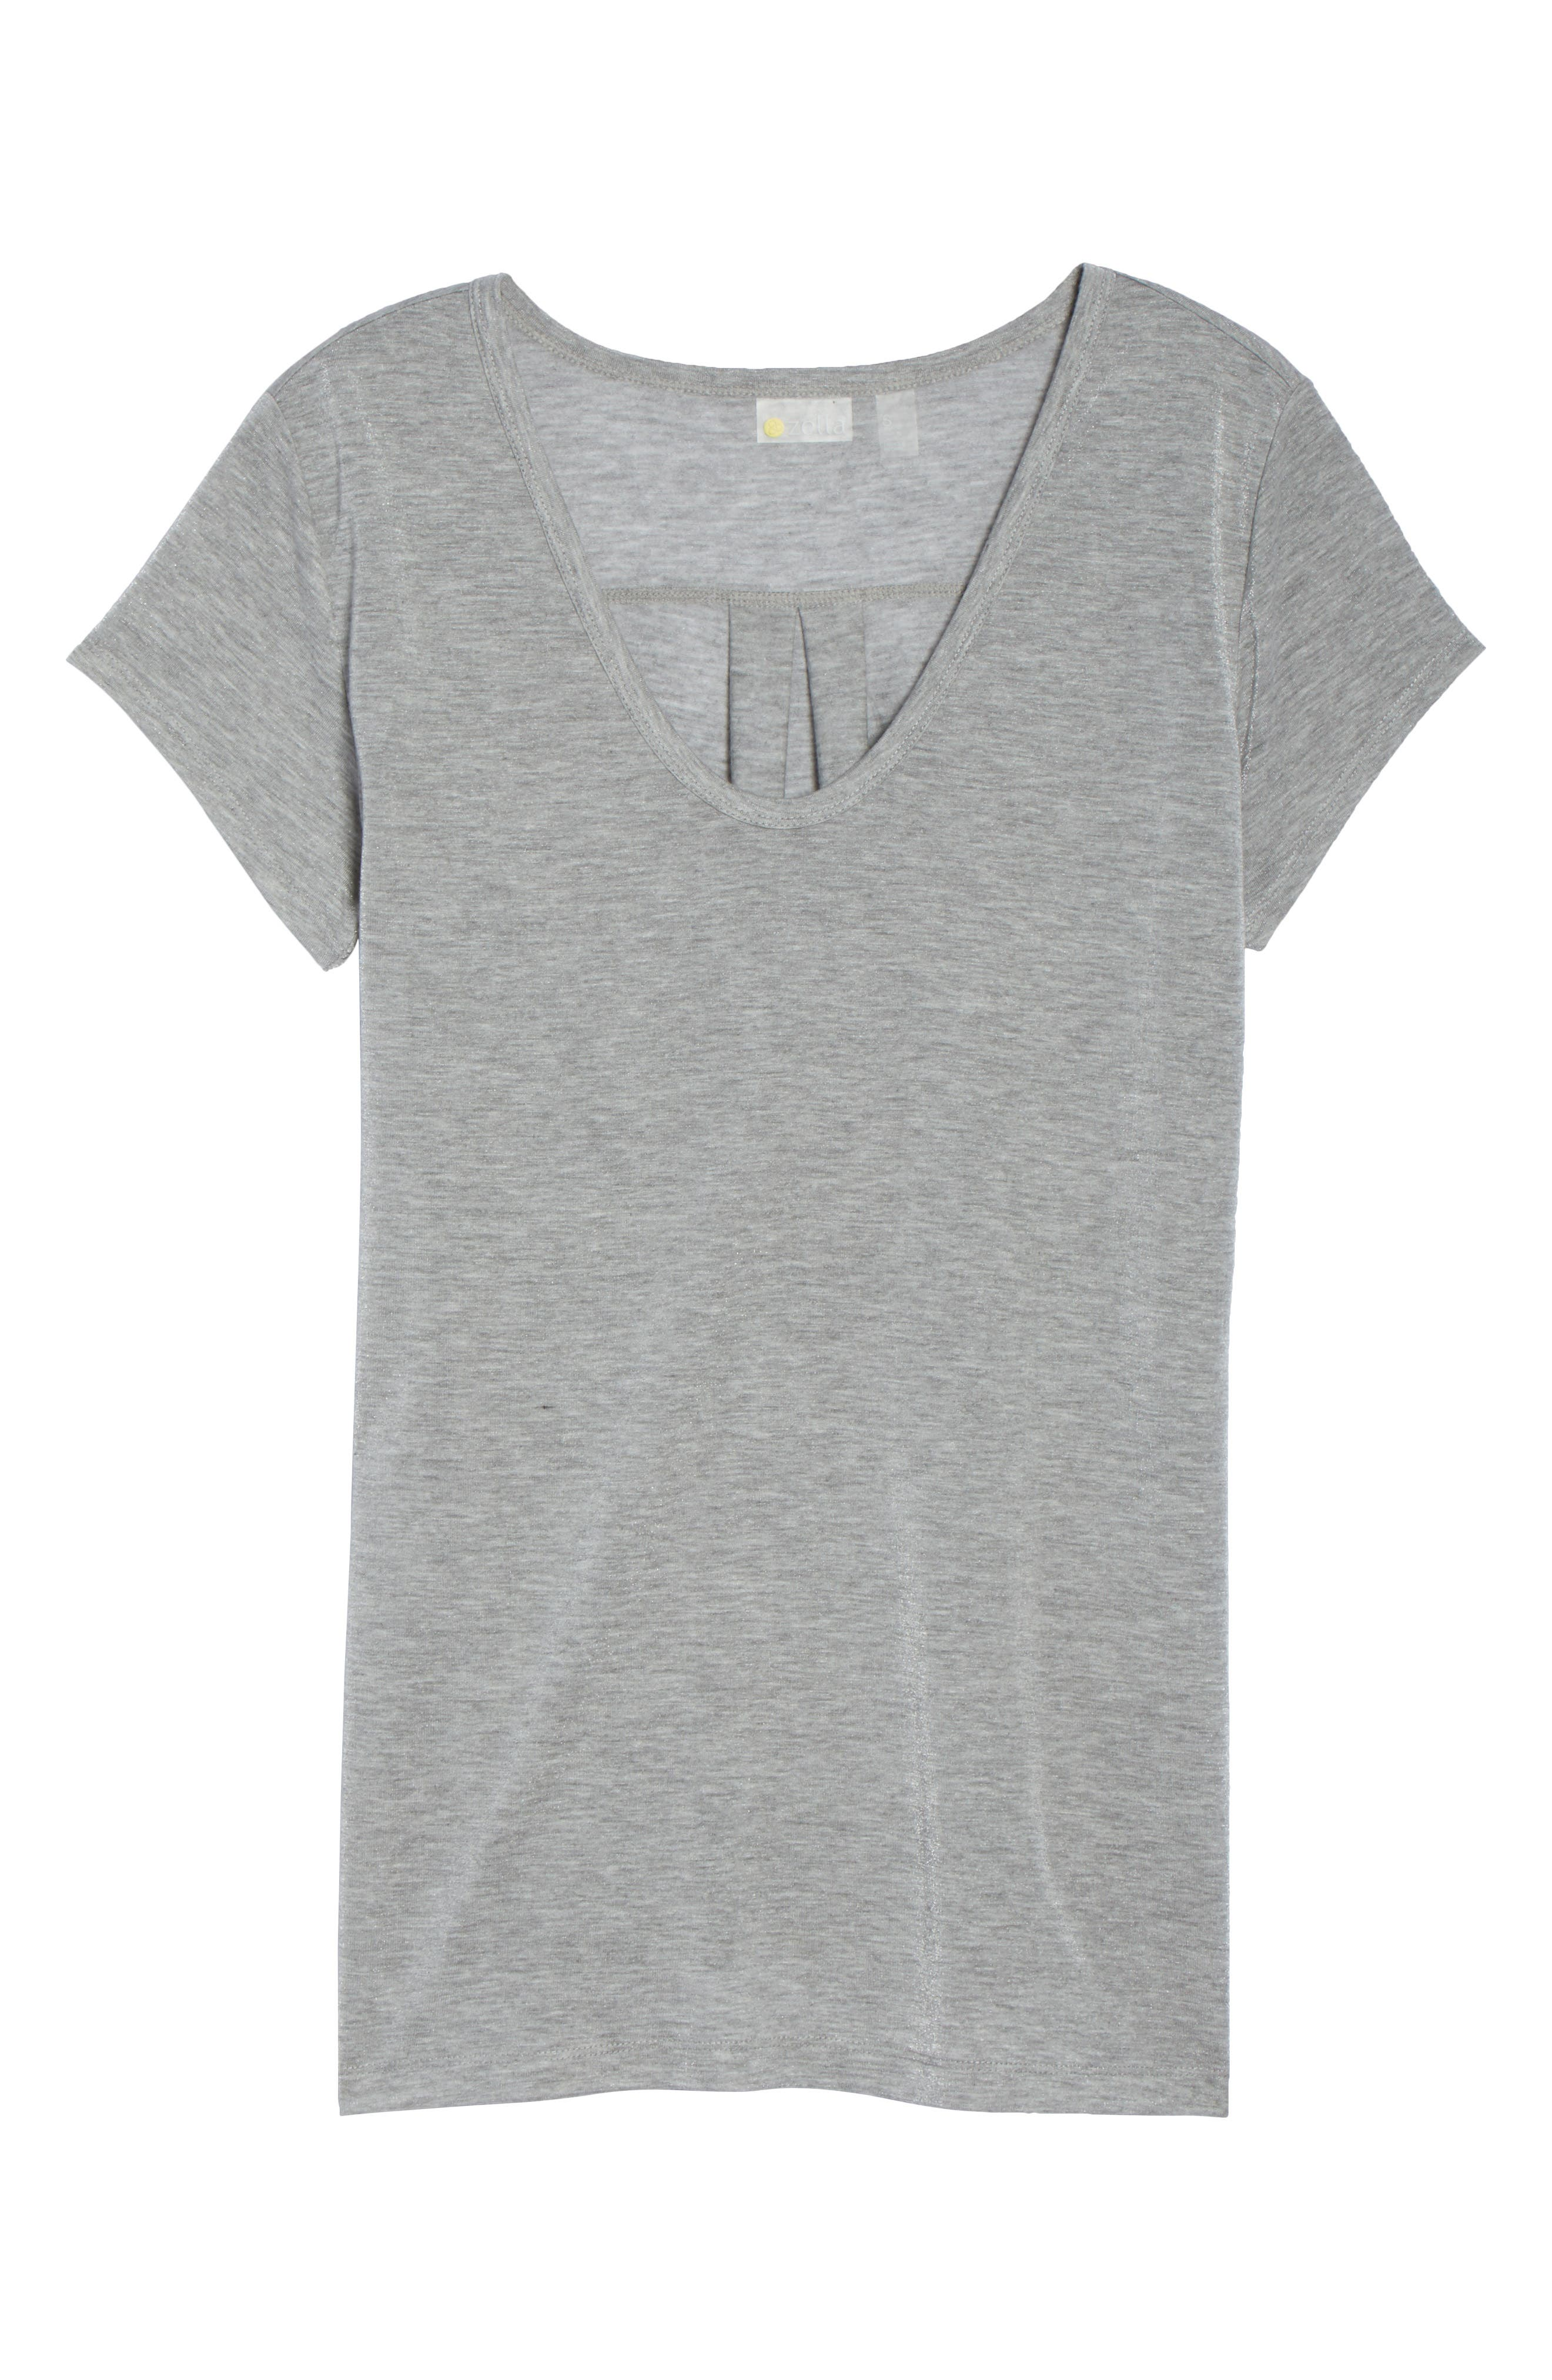 Boot Camp Tee,                             Alternate thumbnail 7, color,                             Grey Ash Heather